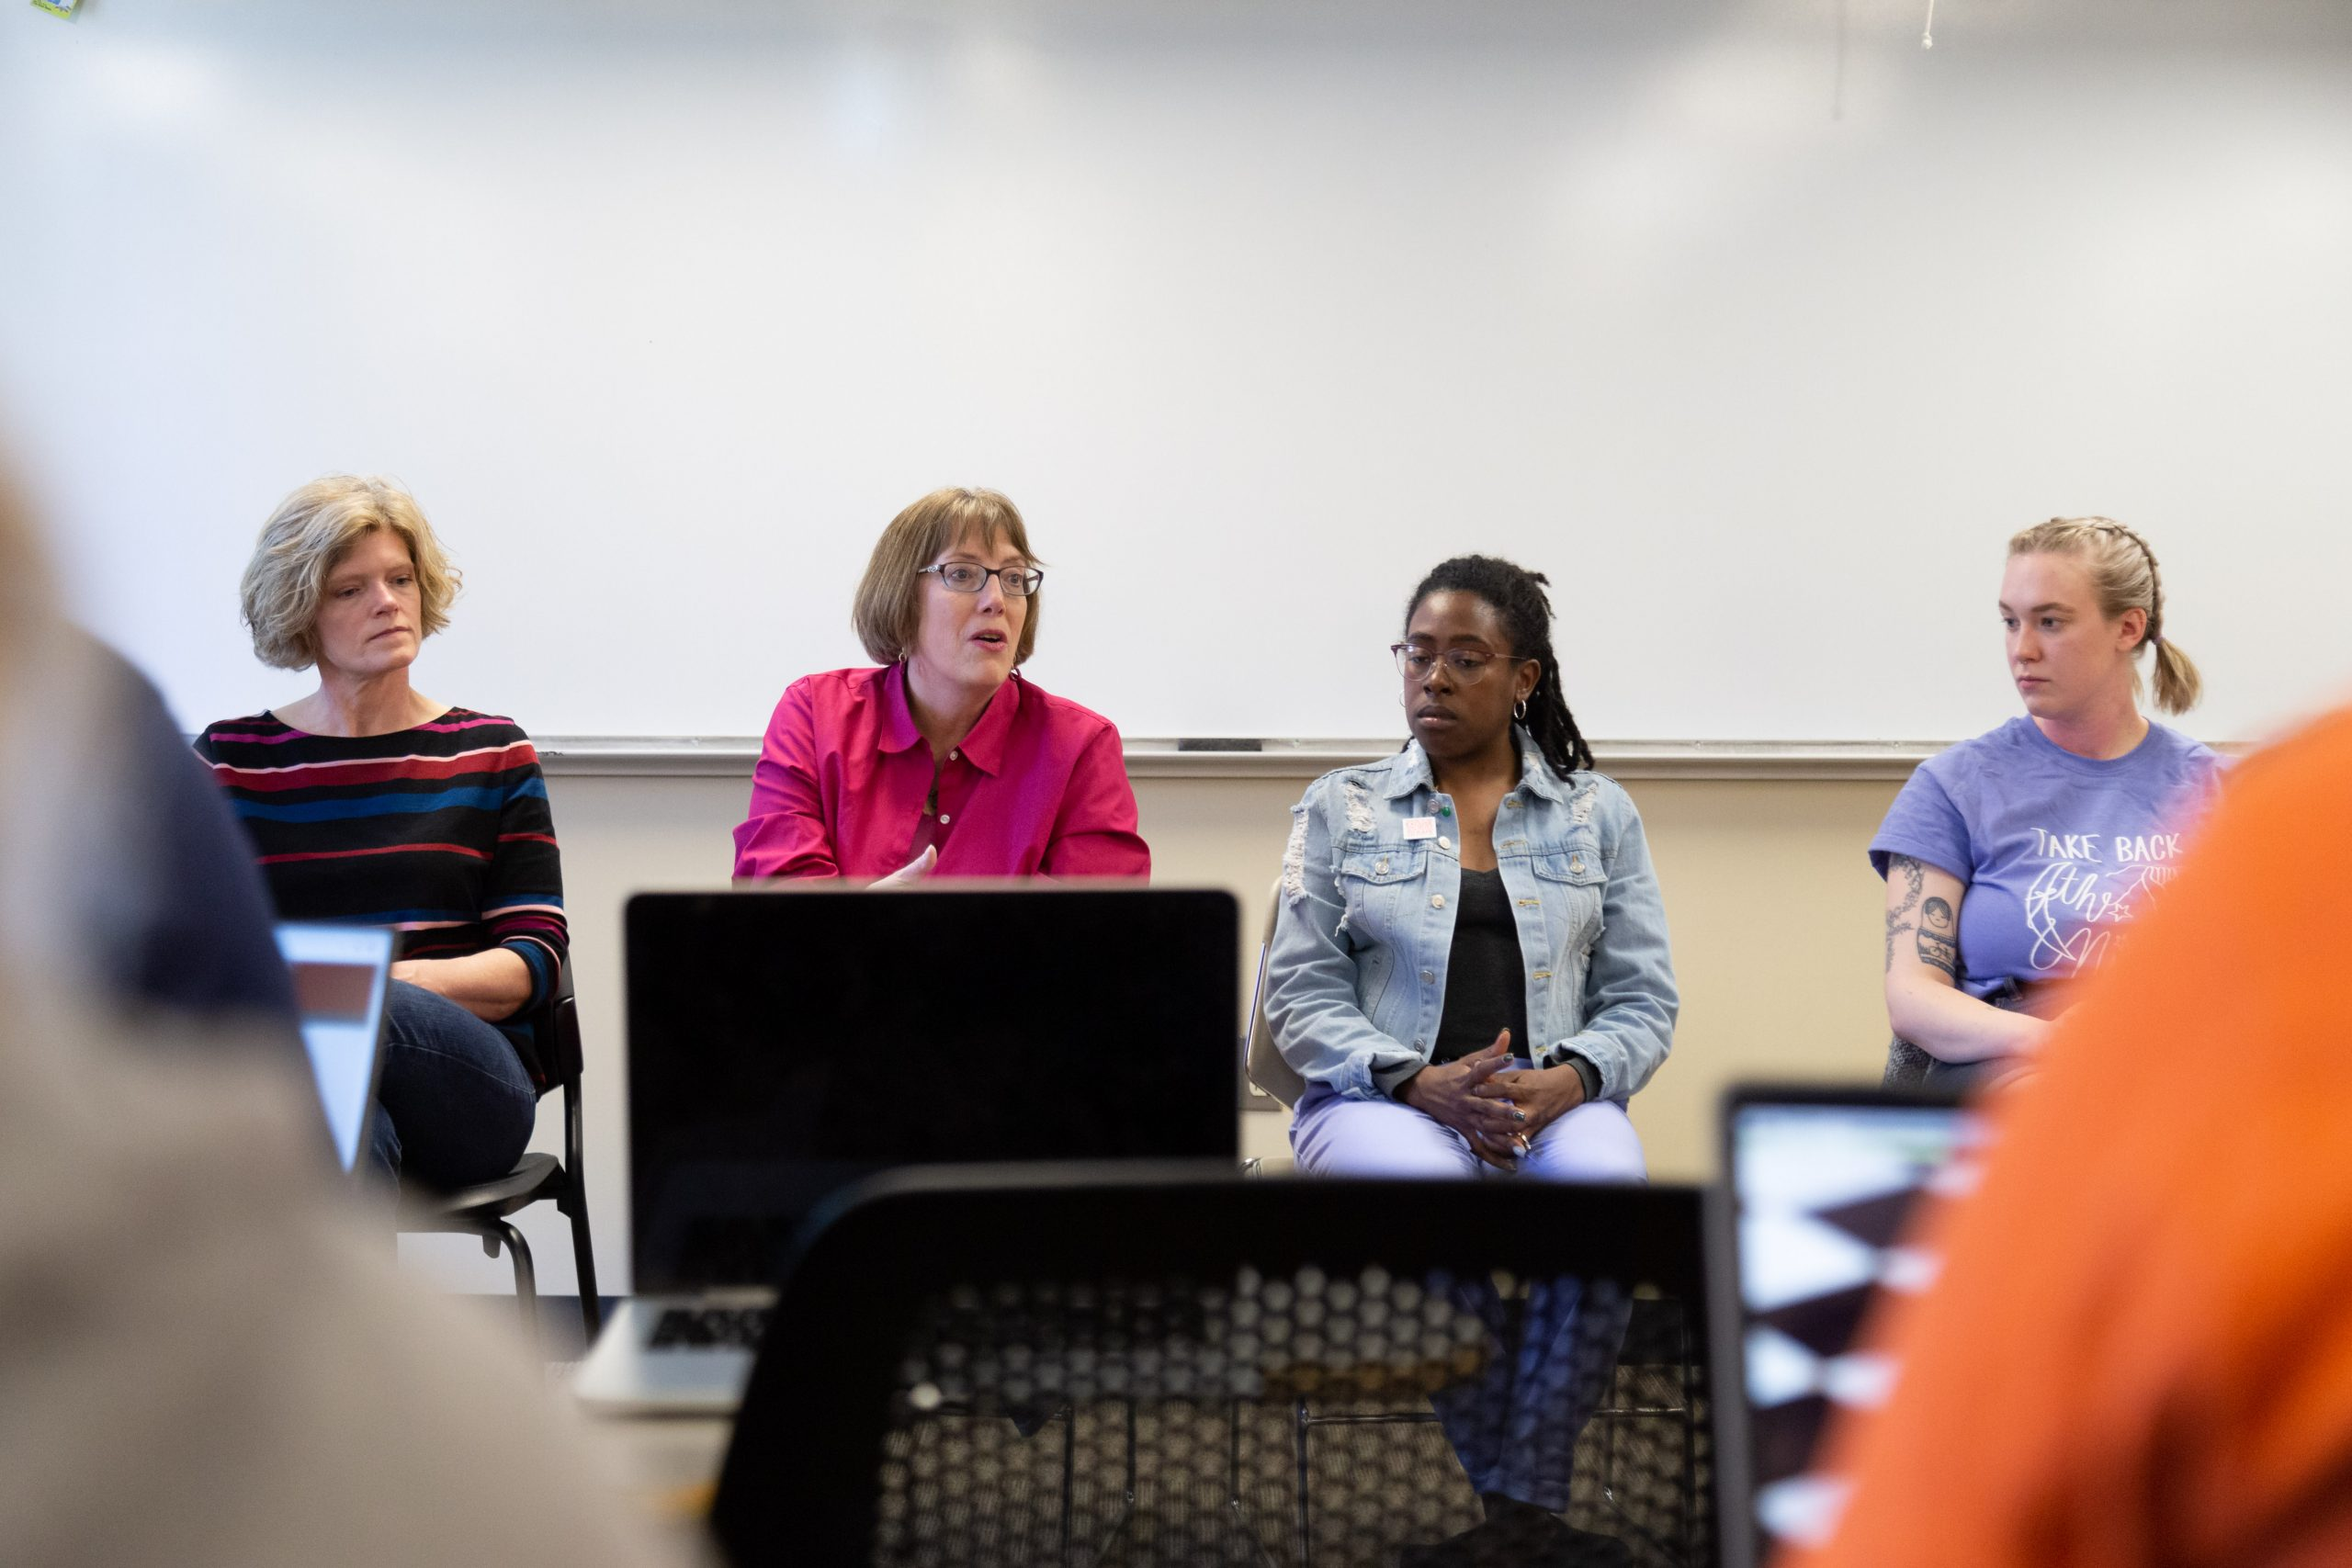 panel featuring a moderator and four women